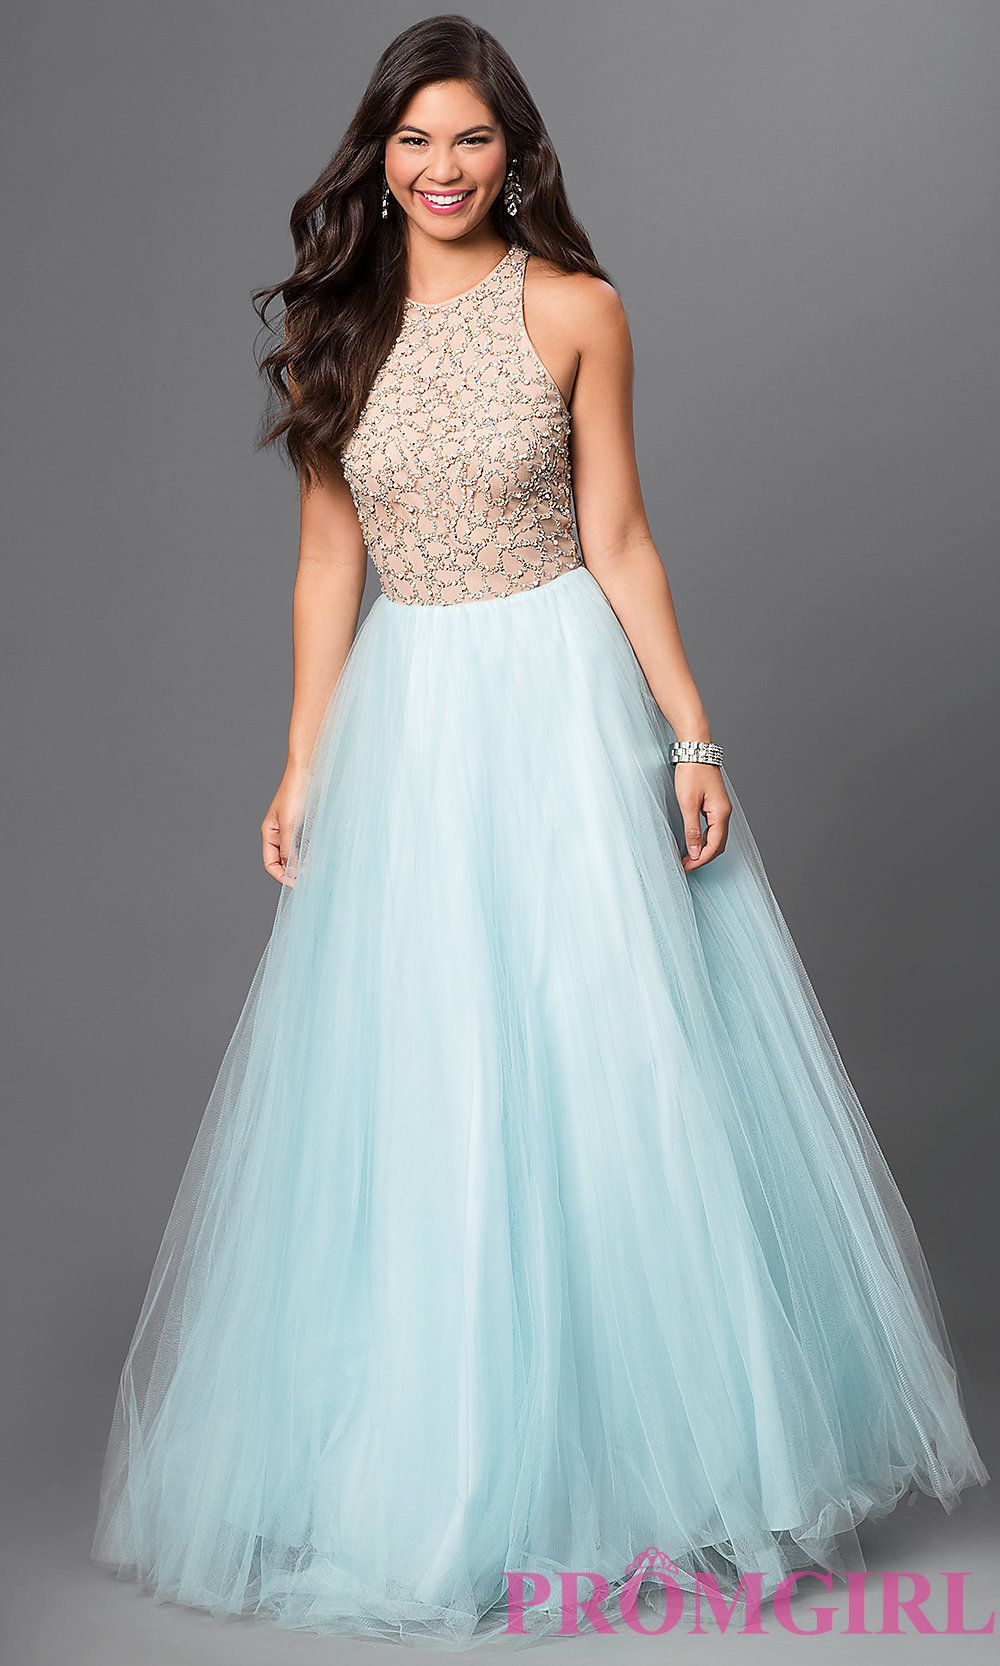 Image of Long Sky Blue Beaded High Neck Prom Dress Front Image ...